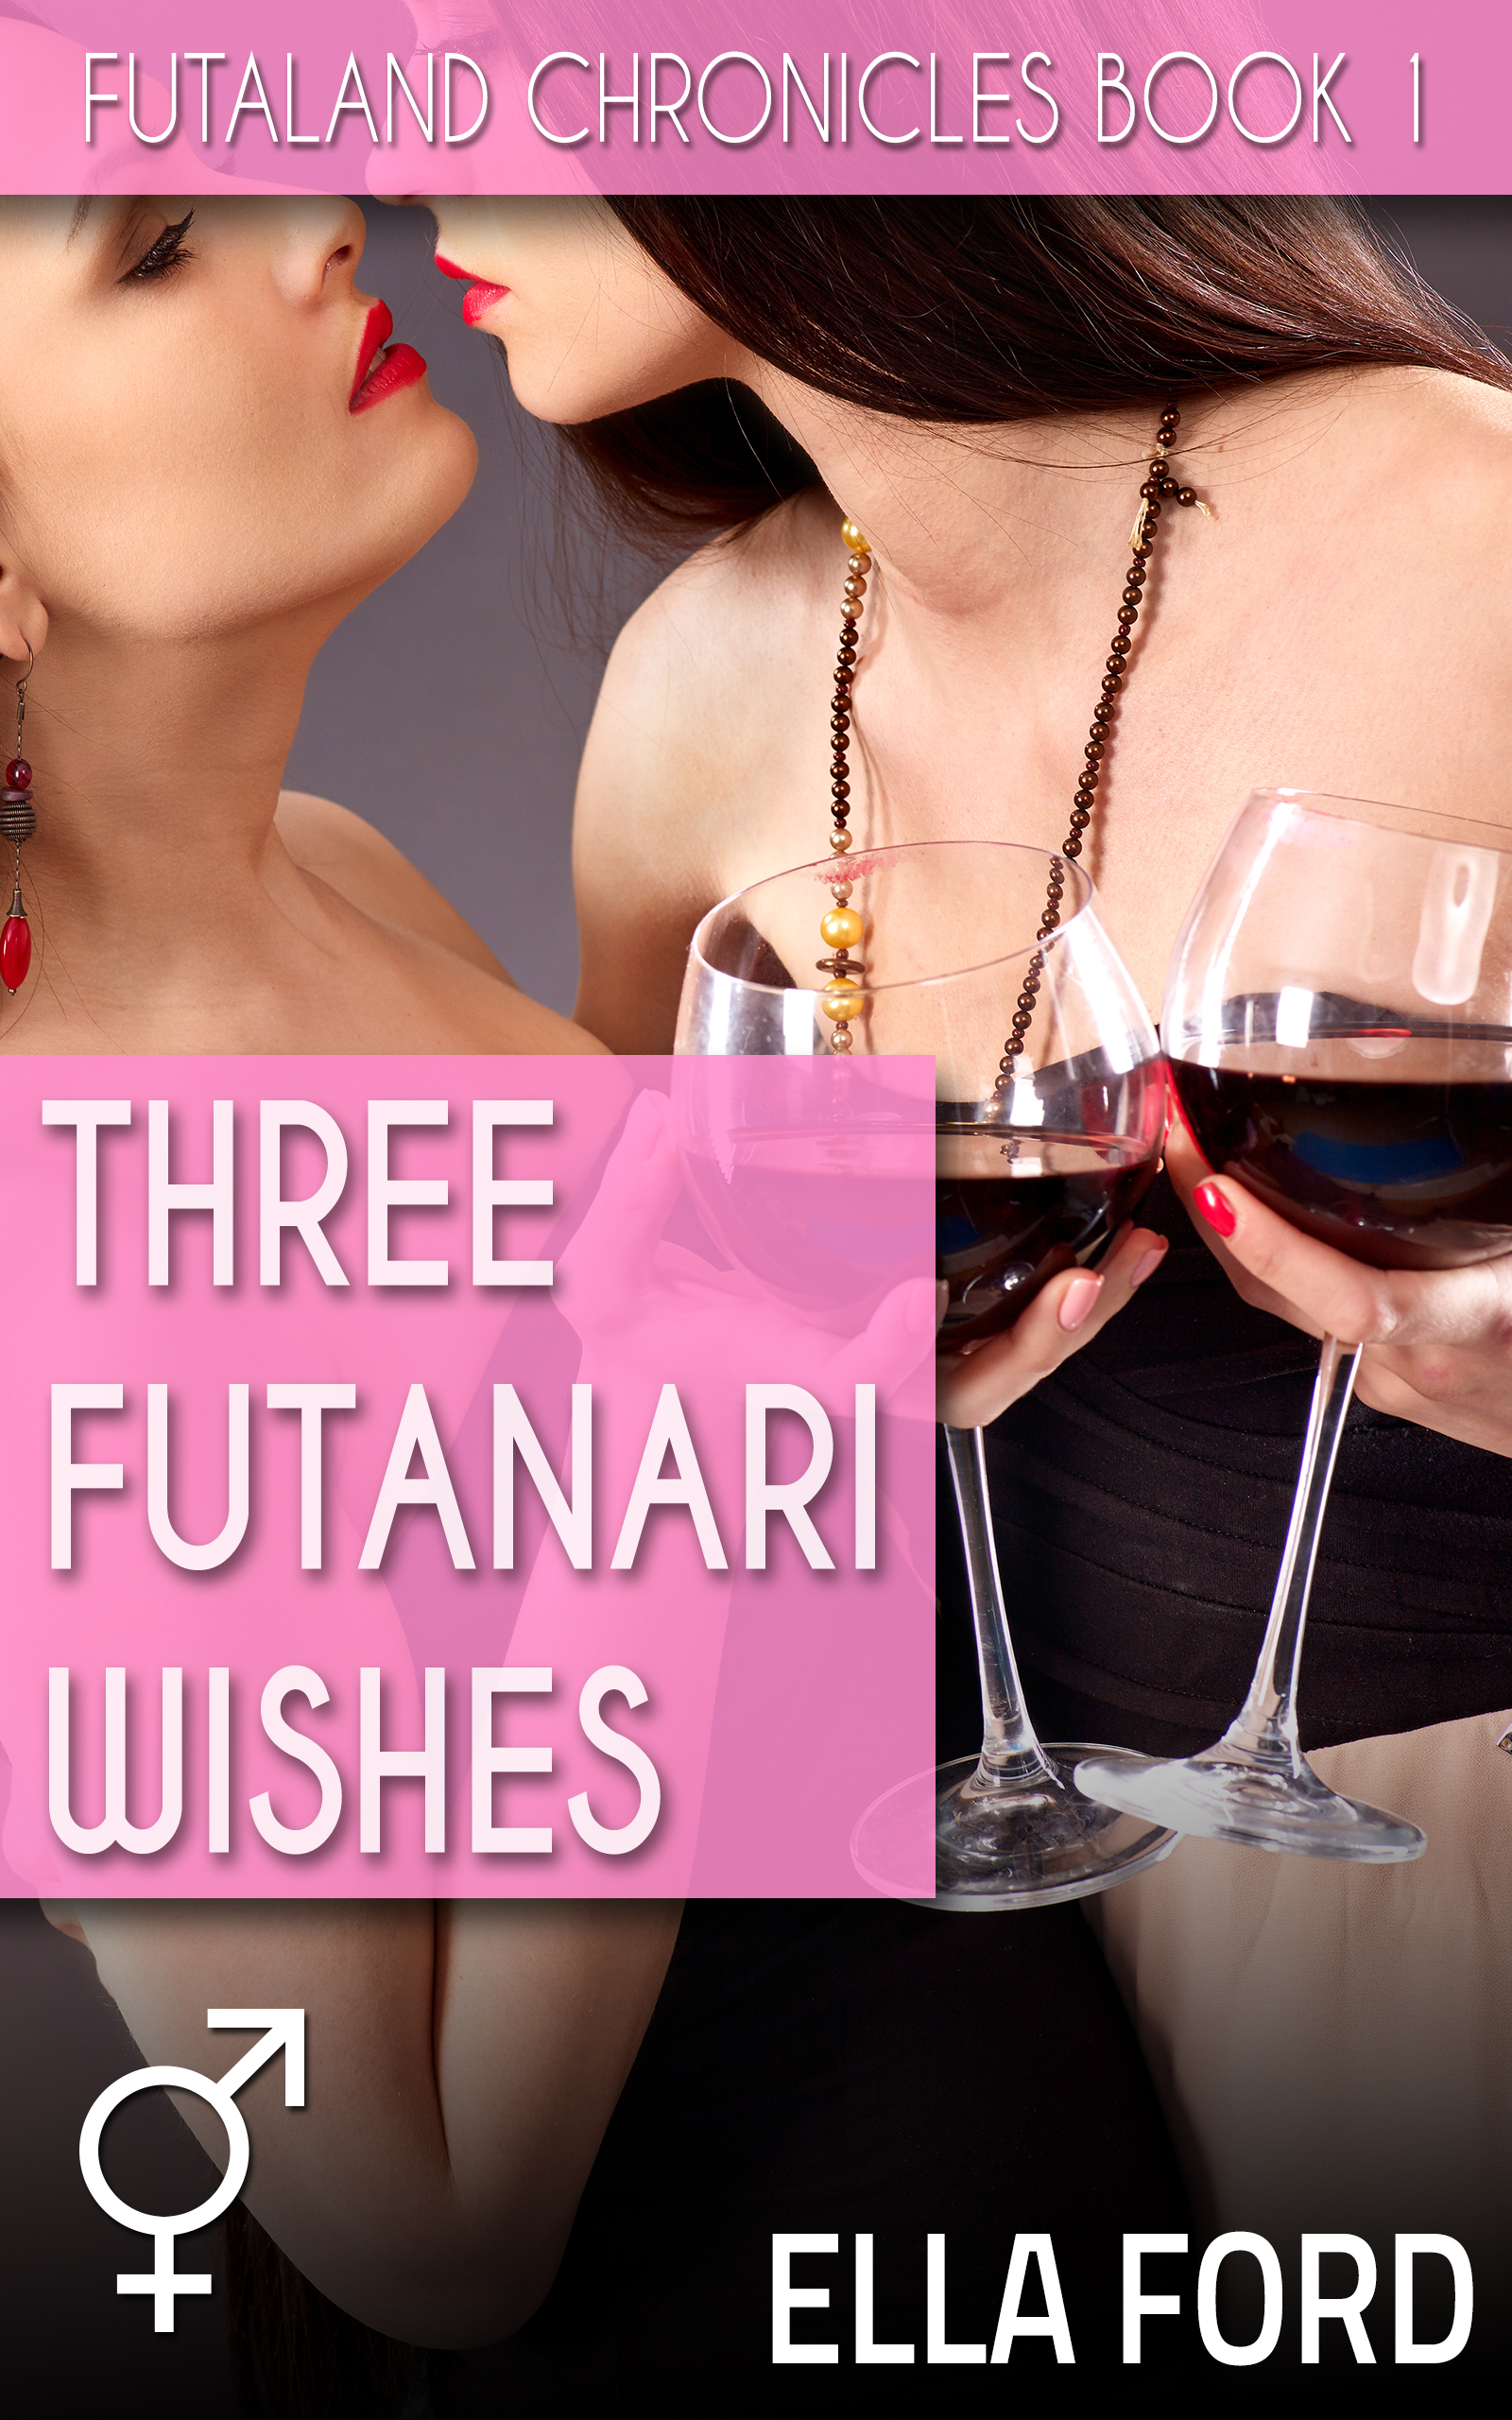 Three Futanari Wishes by Ella Ford